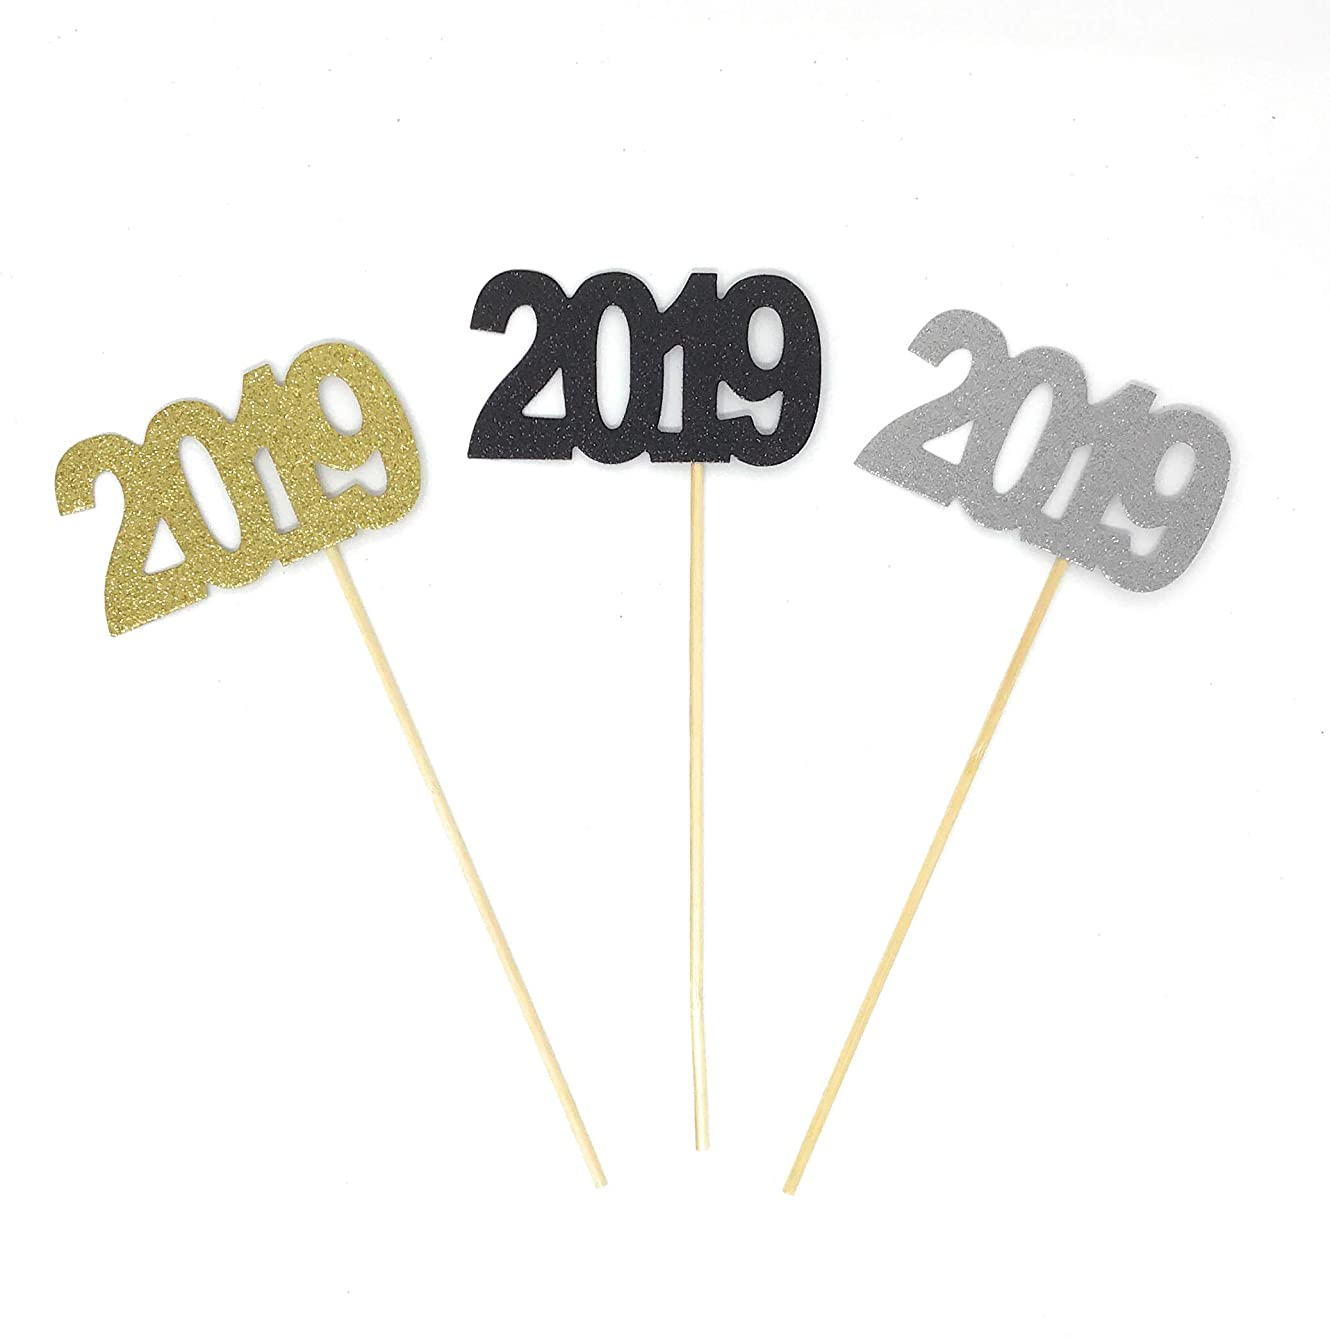 PaperGala Double Sided 3 Pack of 2019 Centerpiece Party Picks for Graduation New Years and NYE Gold, Silver, Black Centerpieces Multi-Color Pack